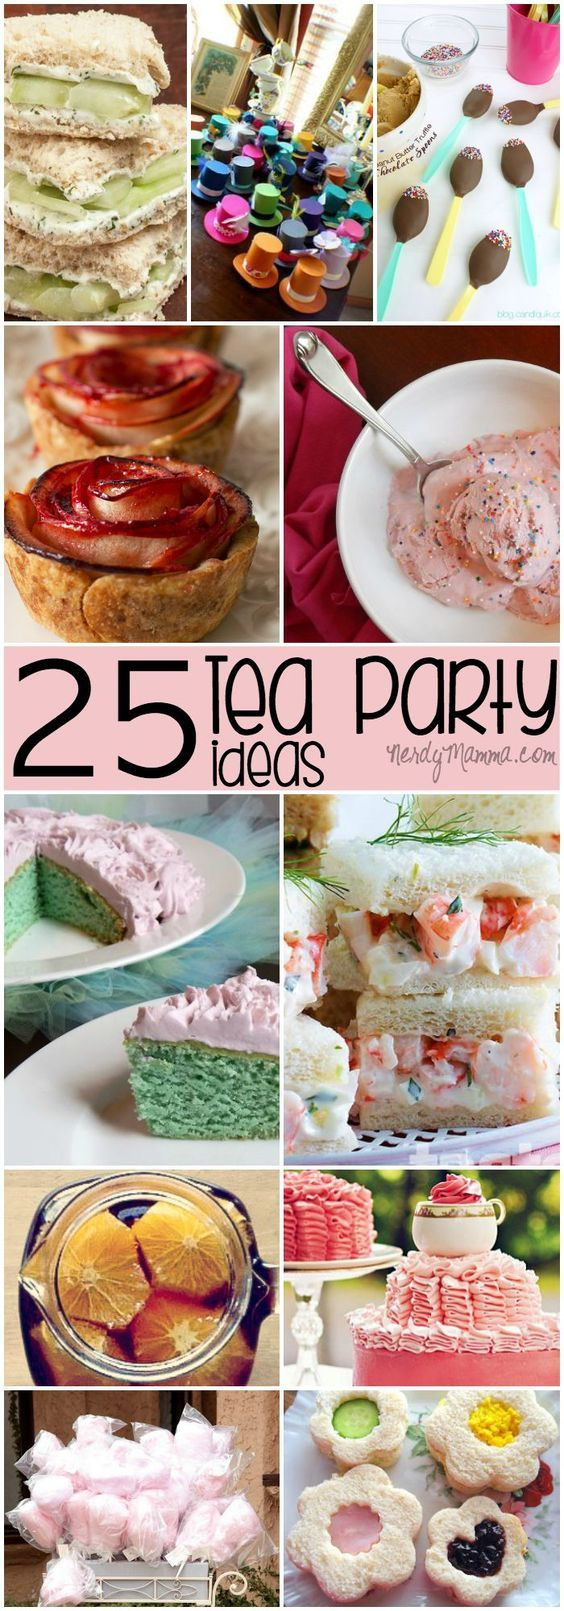 We love these 25 Tea Party Ideas for a little girl's birthday. So cute!